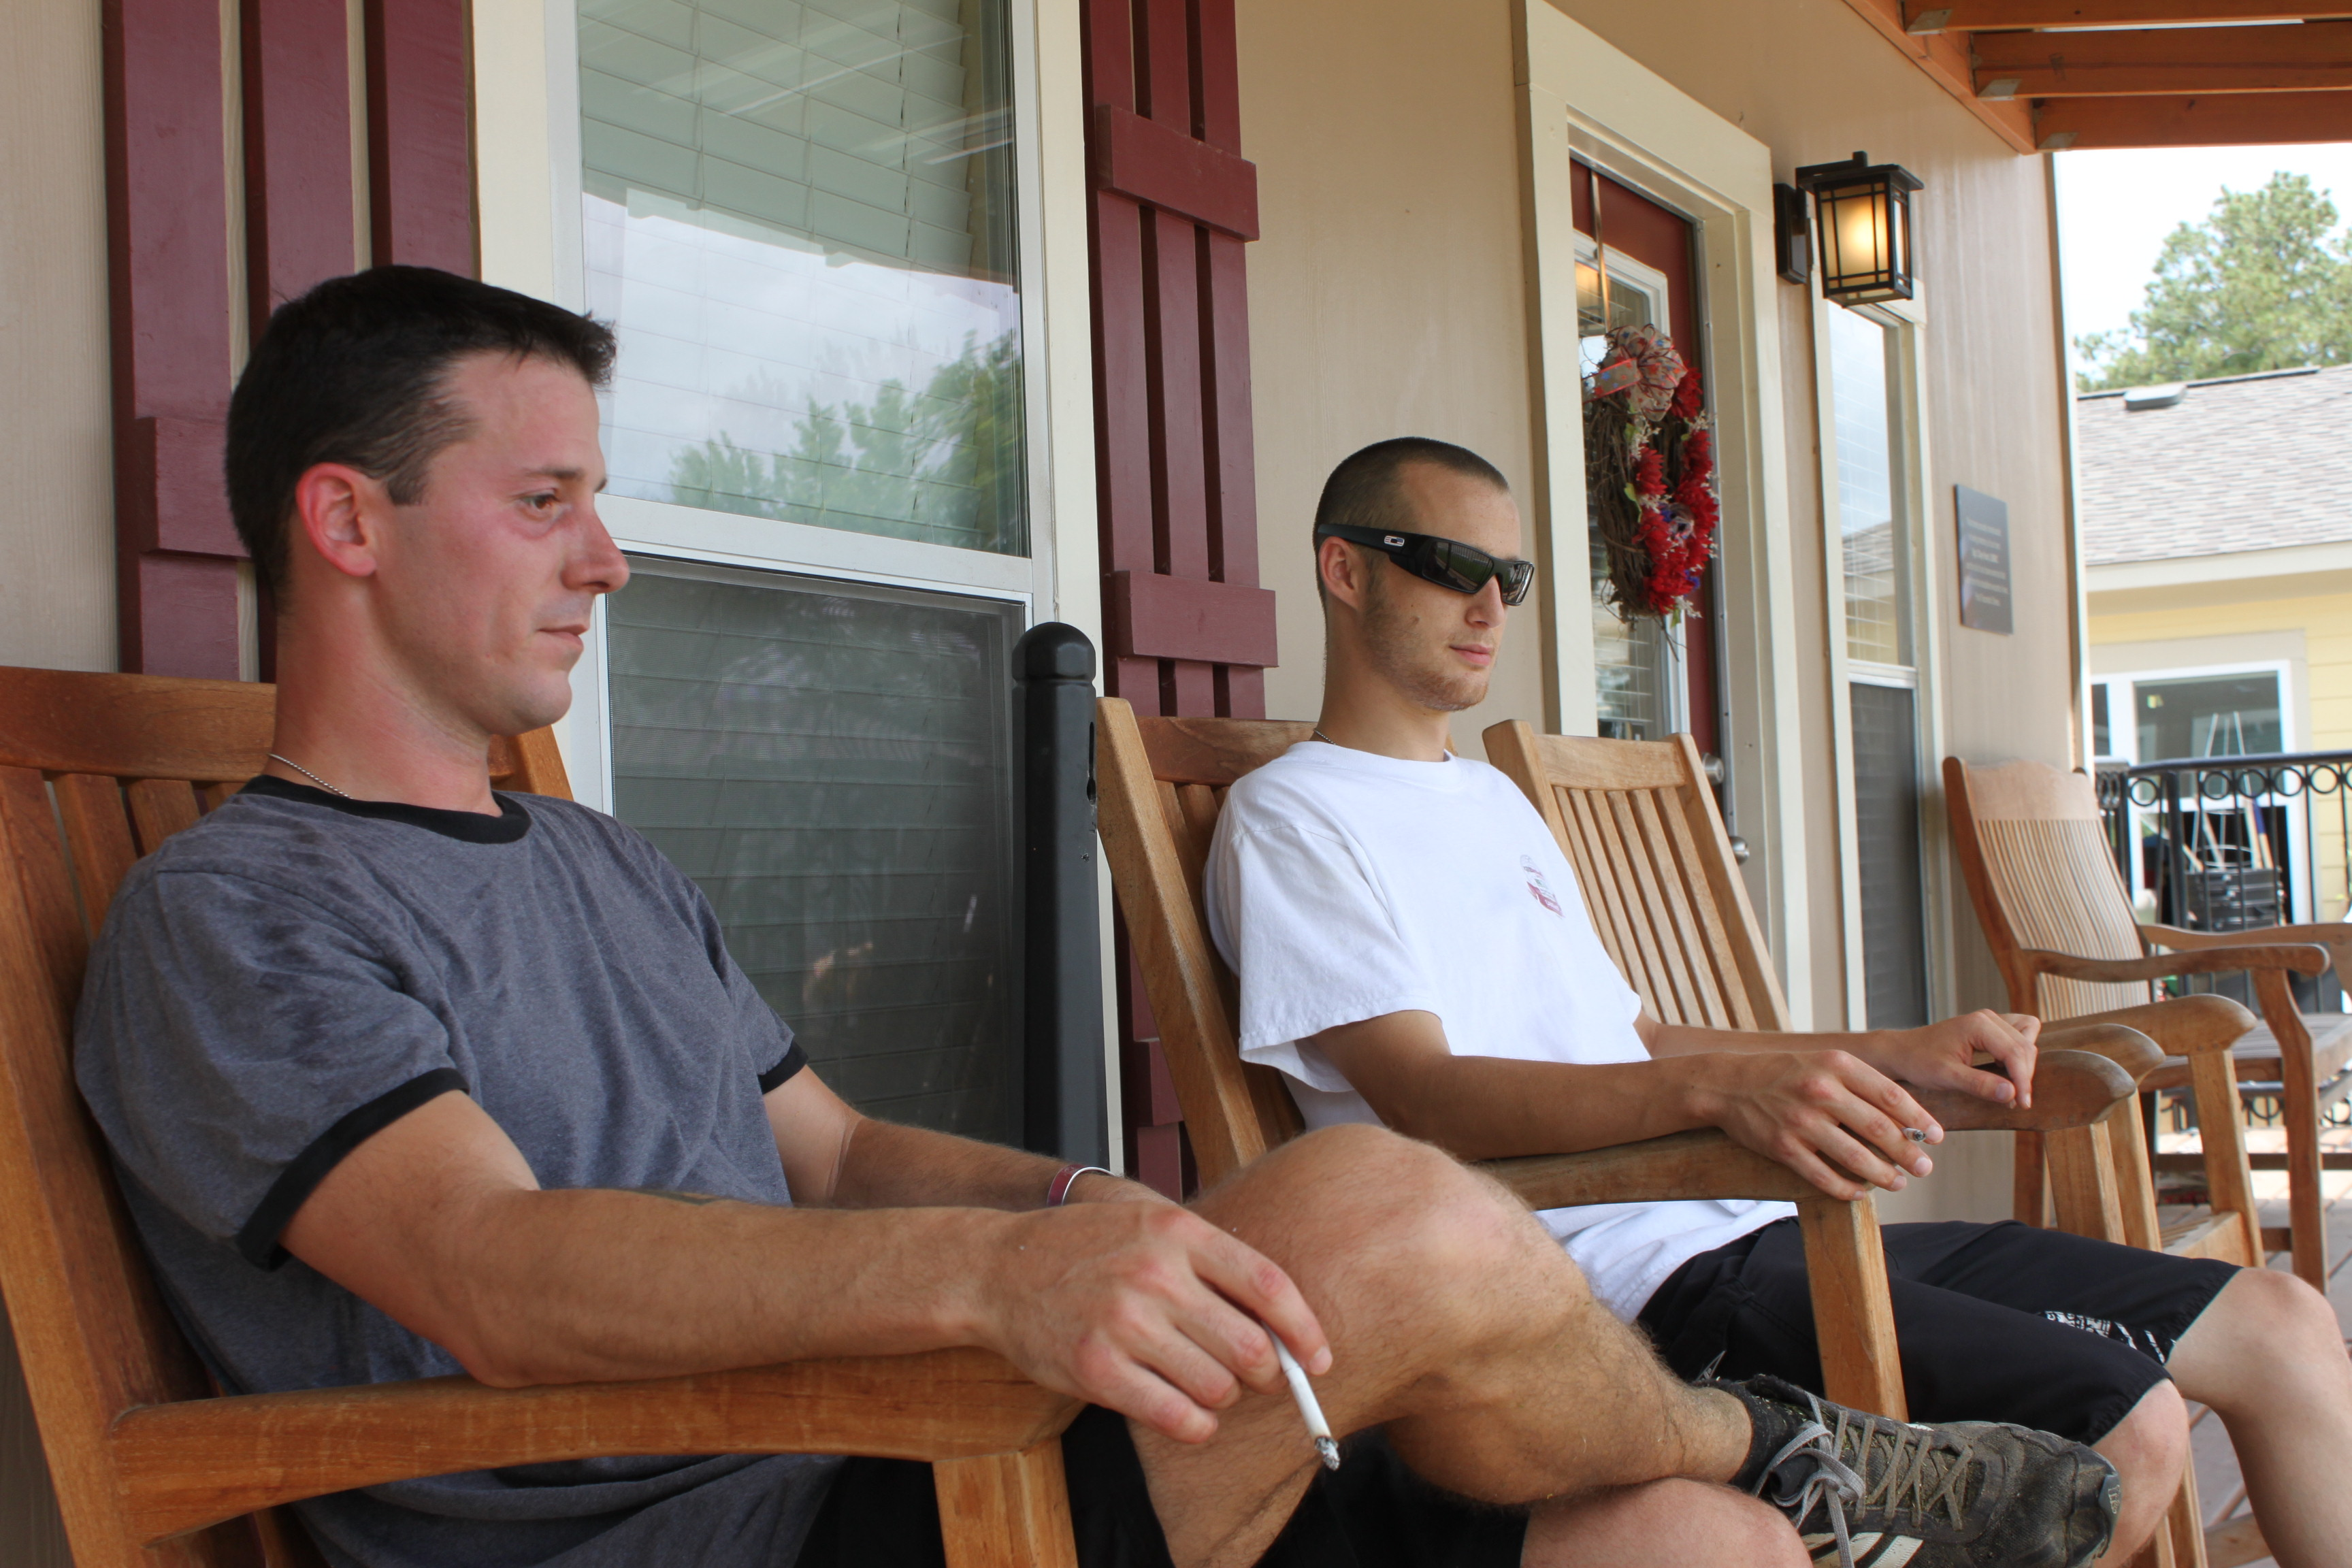 Matthew XXXXX smokes cigarettes with Jaydee Faulkner at their interim house on June 25th, which is part of the PTSD Foundation of America's Camp Hope in Houston, Texas. The camp offers housing for struggling veterans, like Faulkner who suffers from post-traumatic stress brought on by his service in the Army. (Photo by Chase Cook, News21)